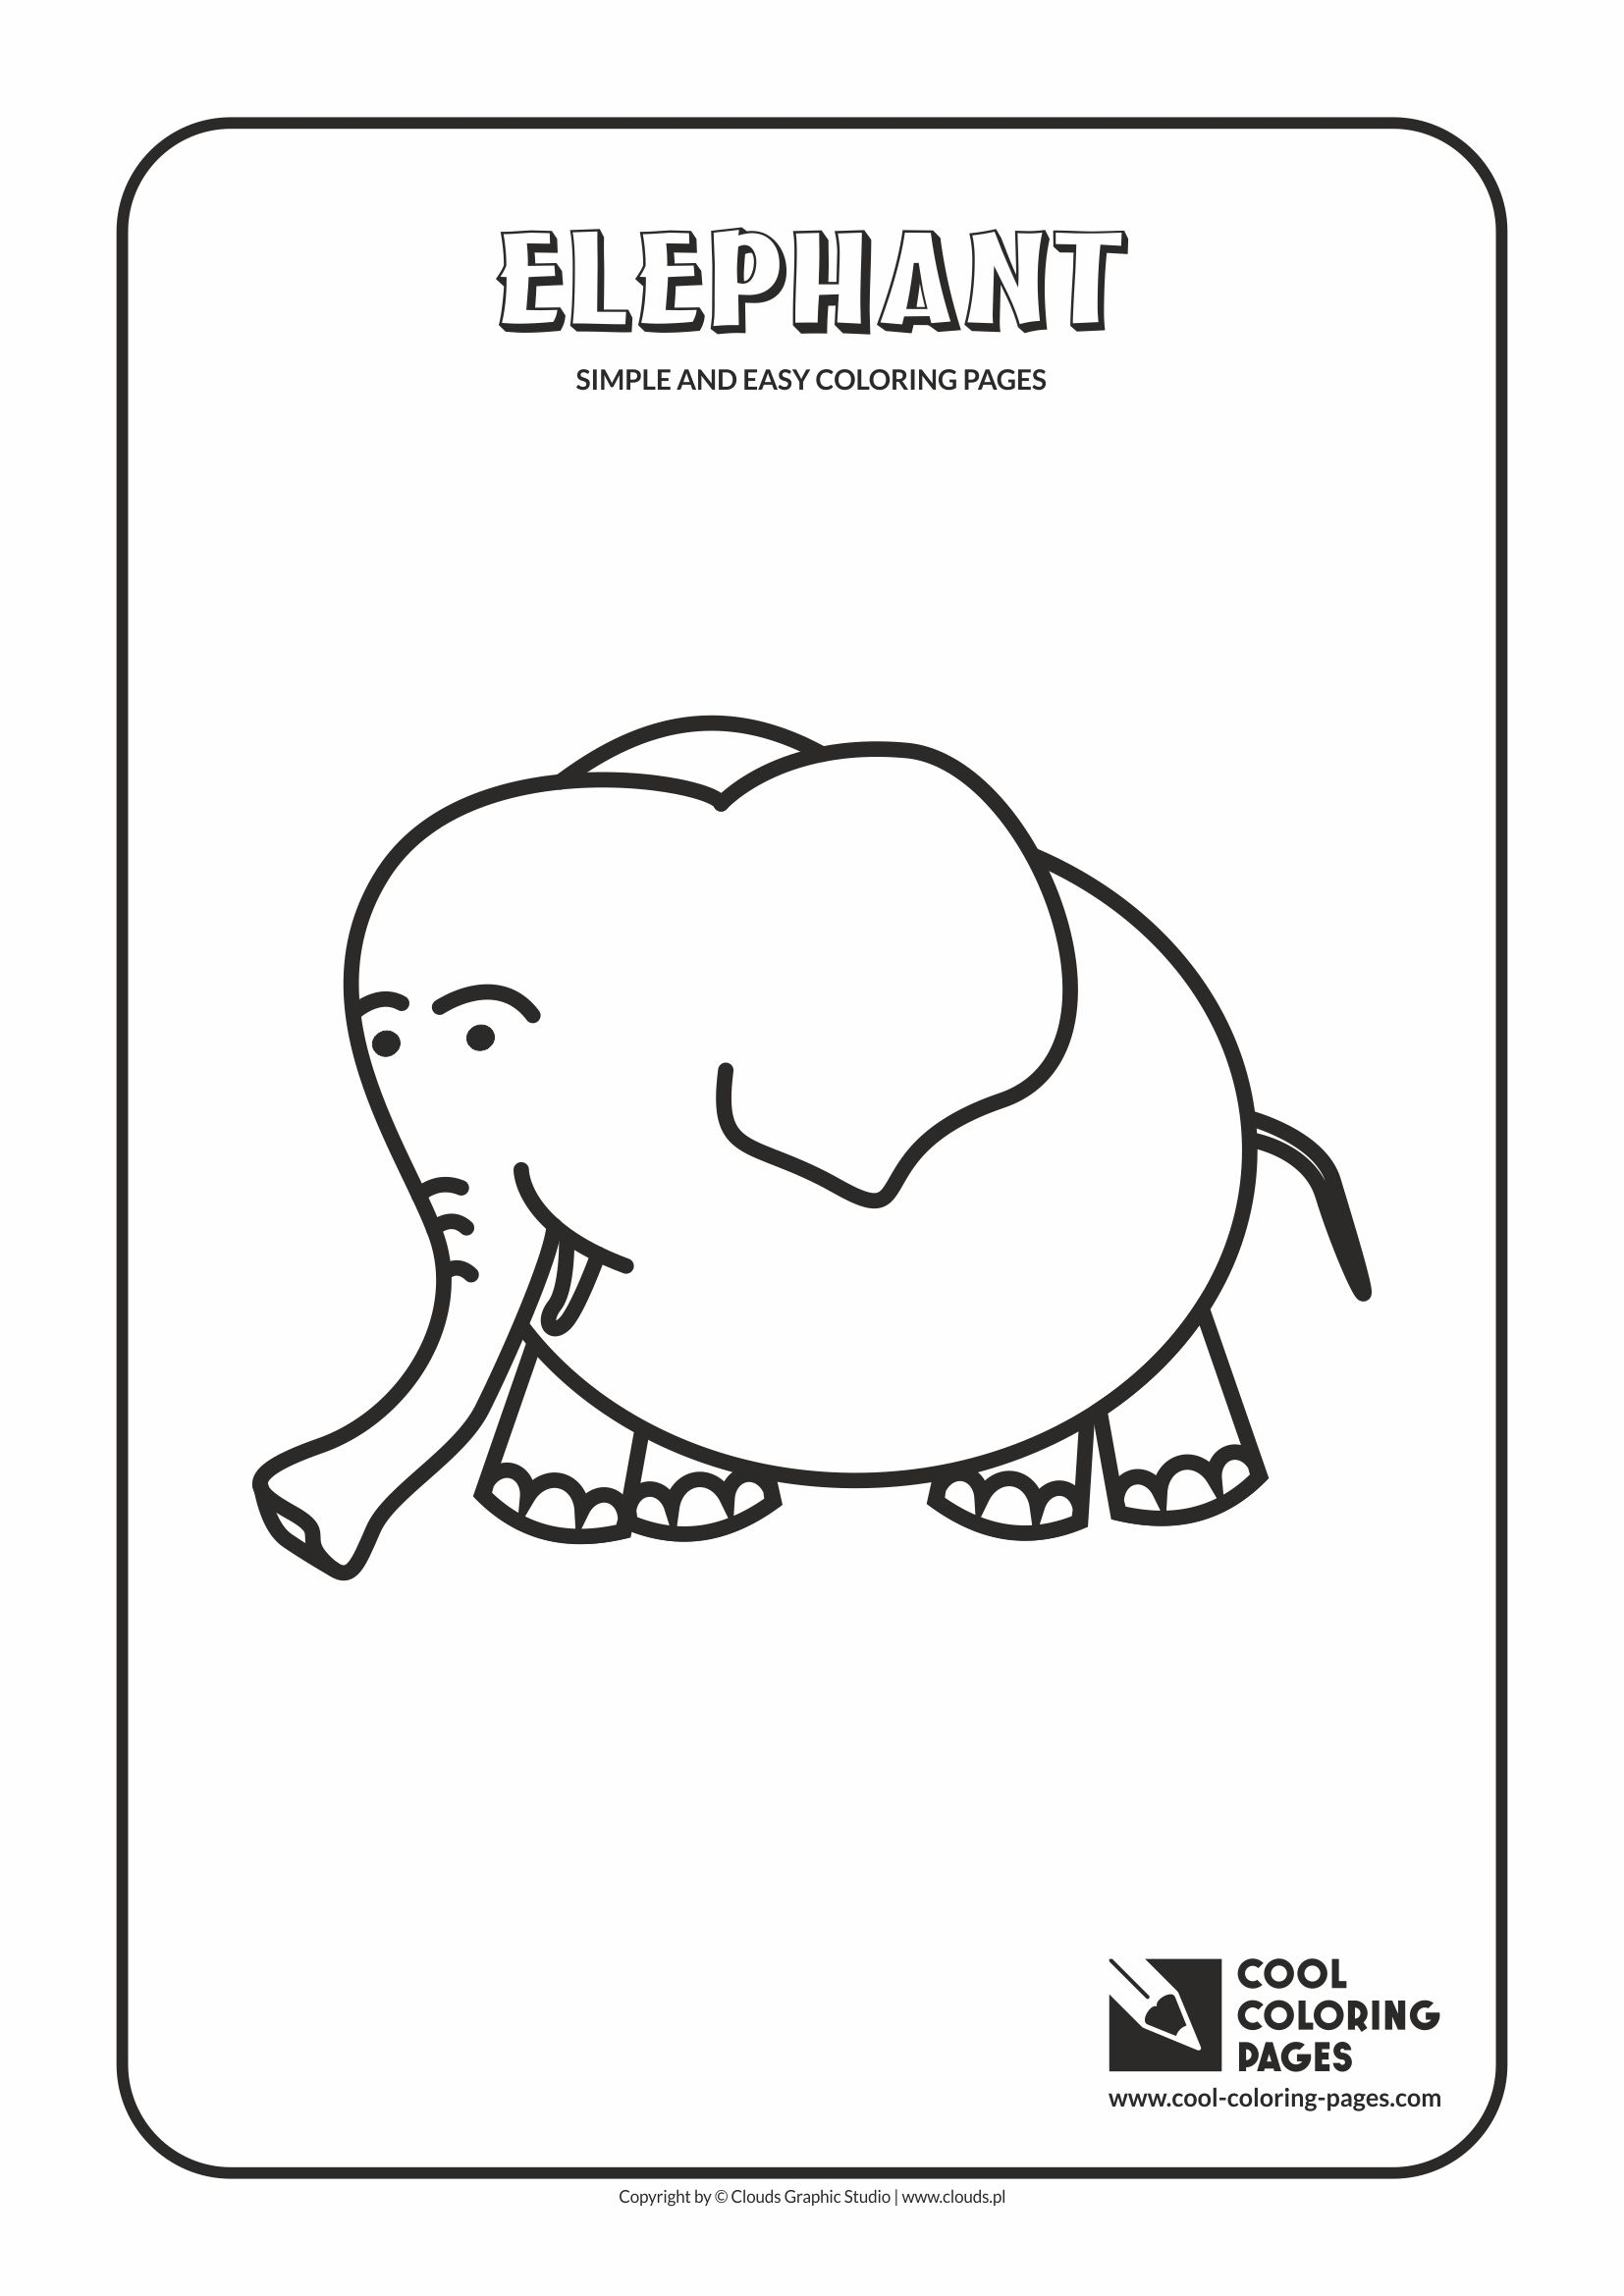 Cool Coloring Pages Simple And Easy Coloring Pages Elephant Cool Coloring Pages Free Educational Coloring Pages And Activities For Kids